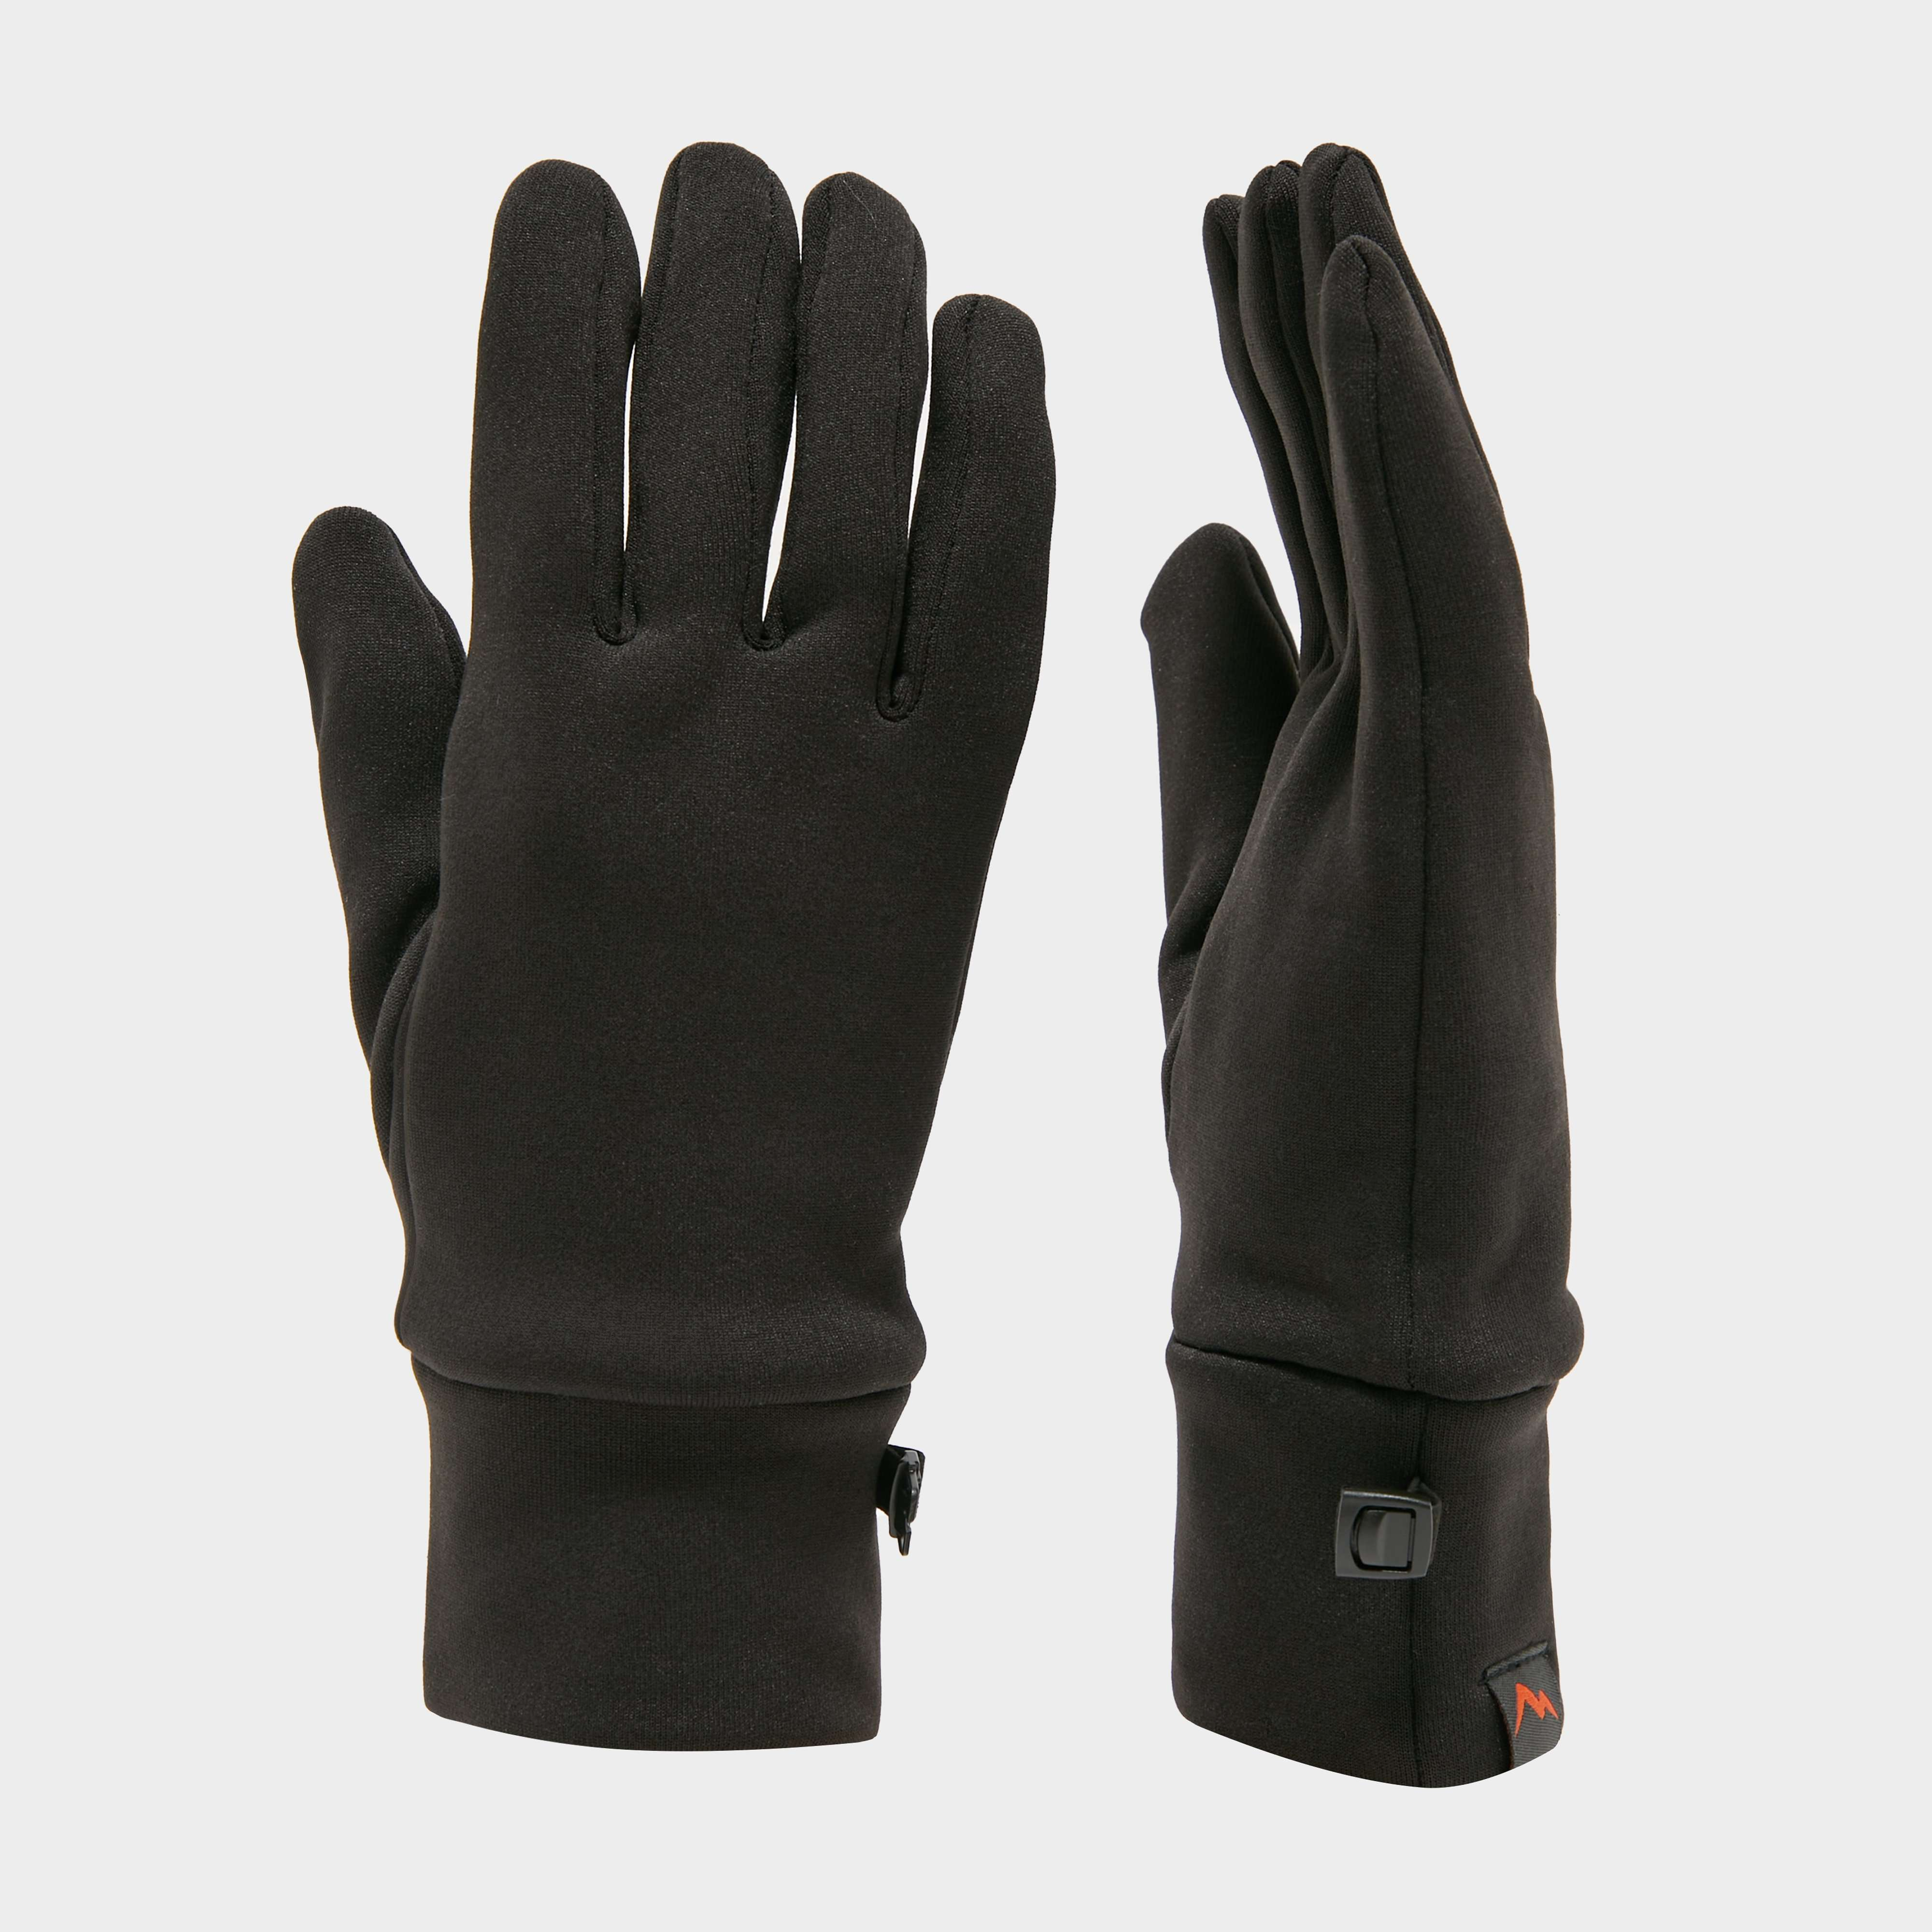 PETER STORM 6 Way Stretch Gloves